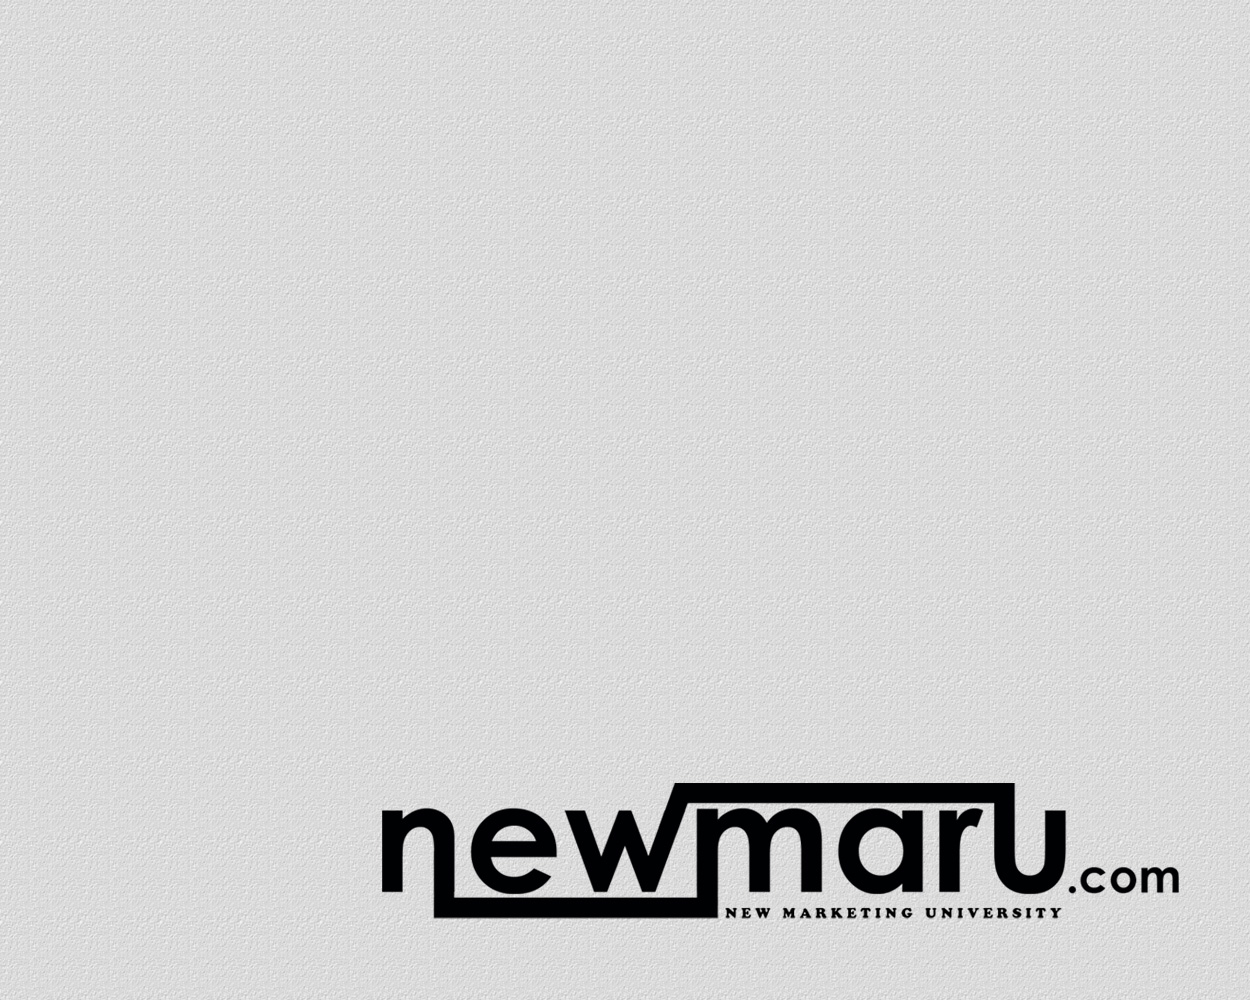 Logo Design by smokegroovechill - Entry No. 6 in the Logo Design Contest NewMarU.com (New Marketing University).